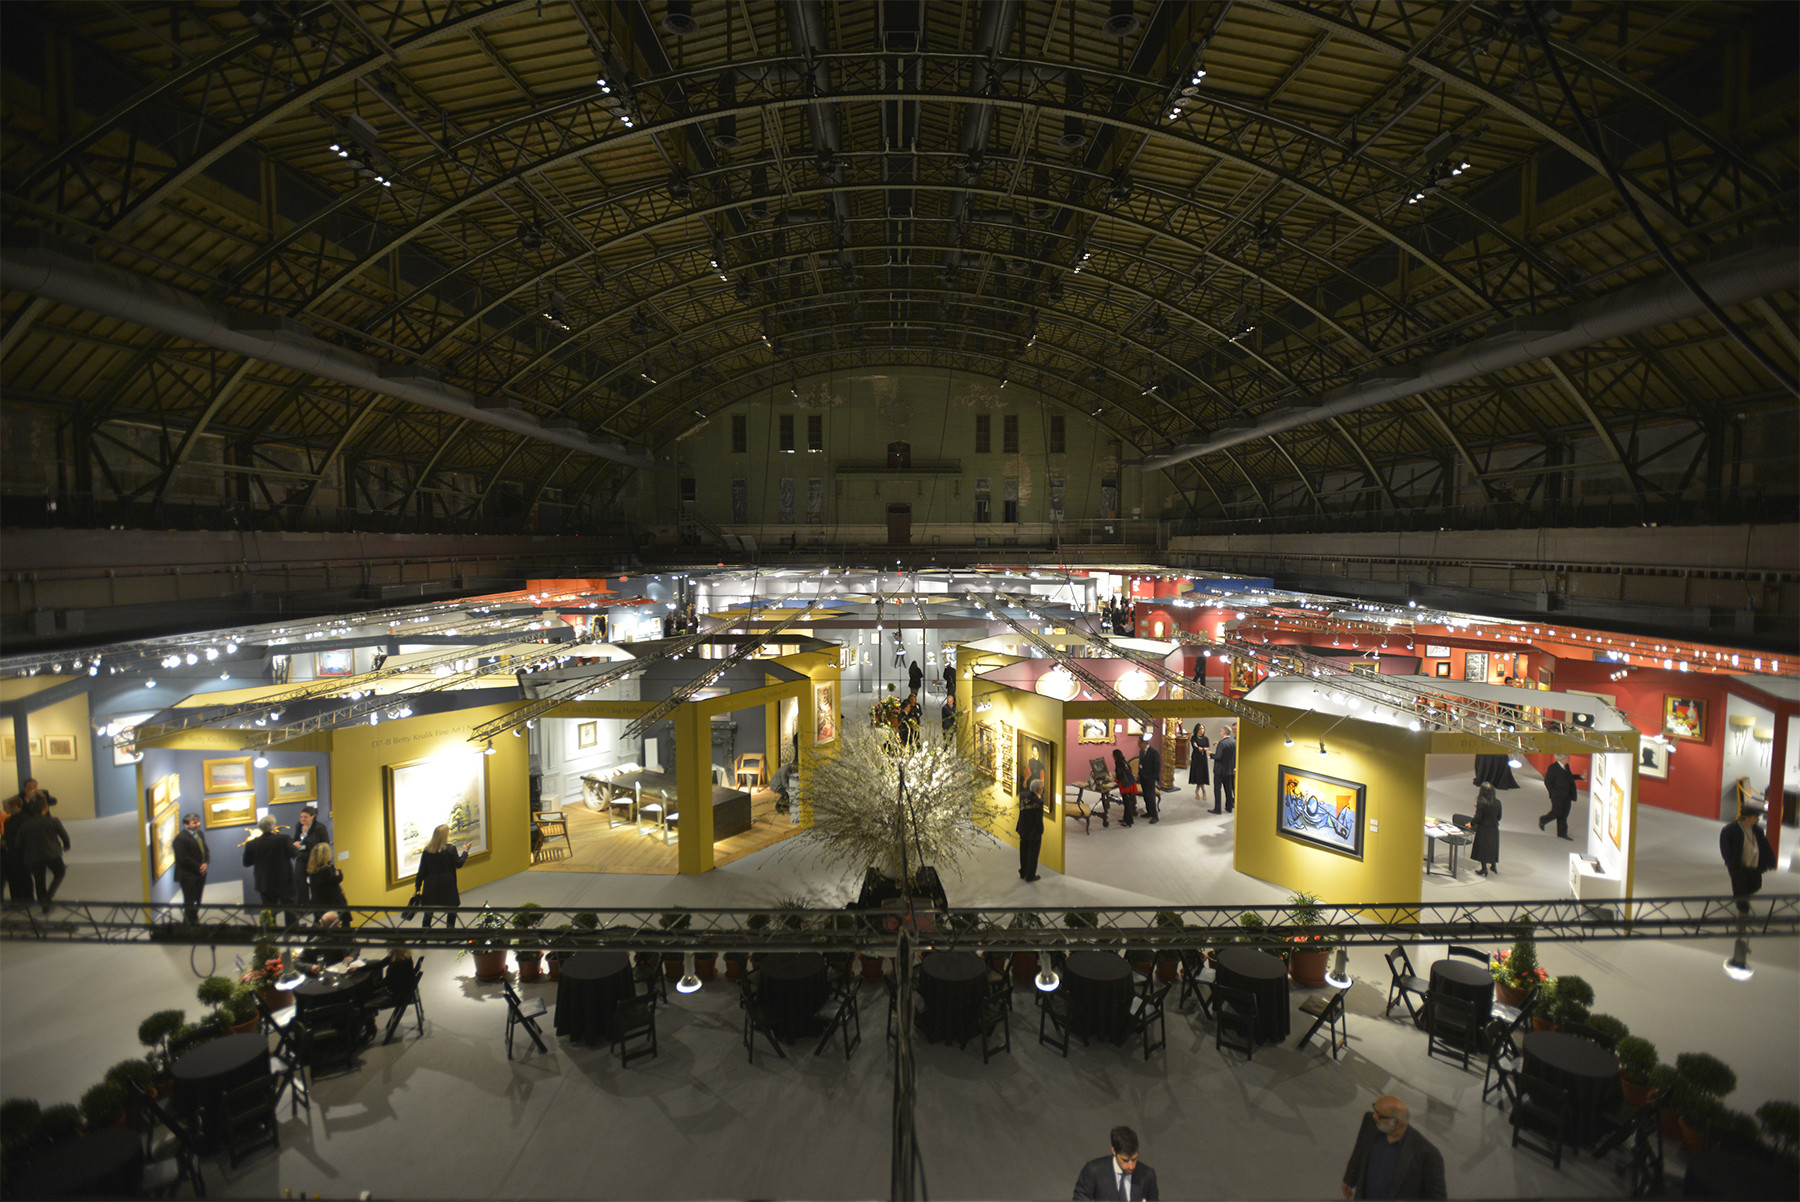 Rafael Viñoly's Structural Experiment at Park Avenue Armory, The Exhibition Space (updated February 2015). Image © Román Viñoly